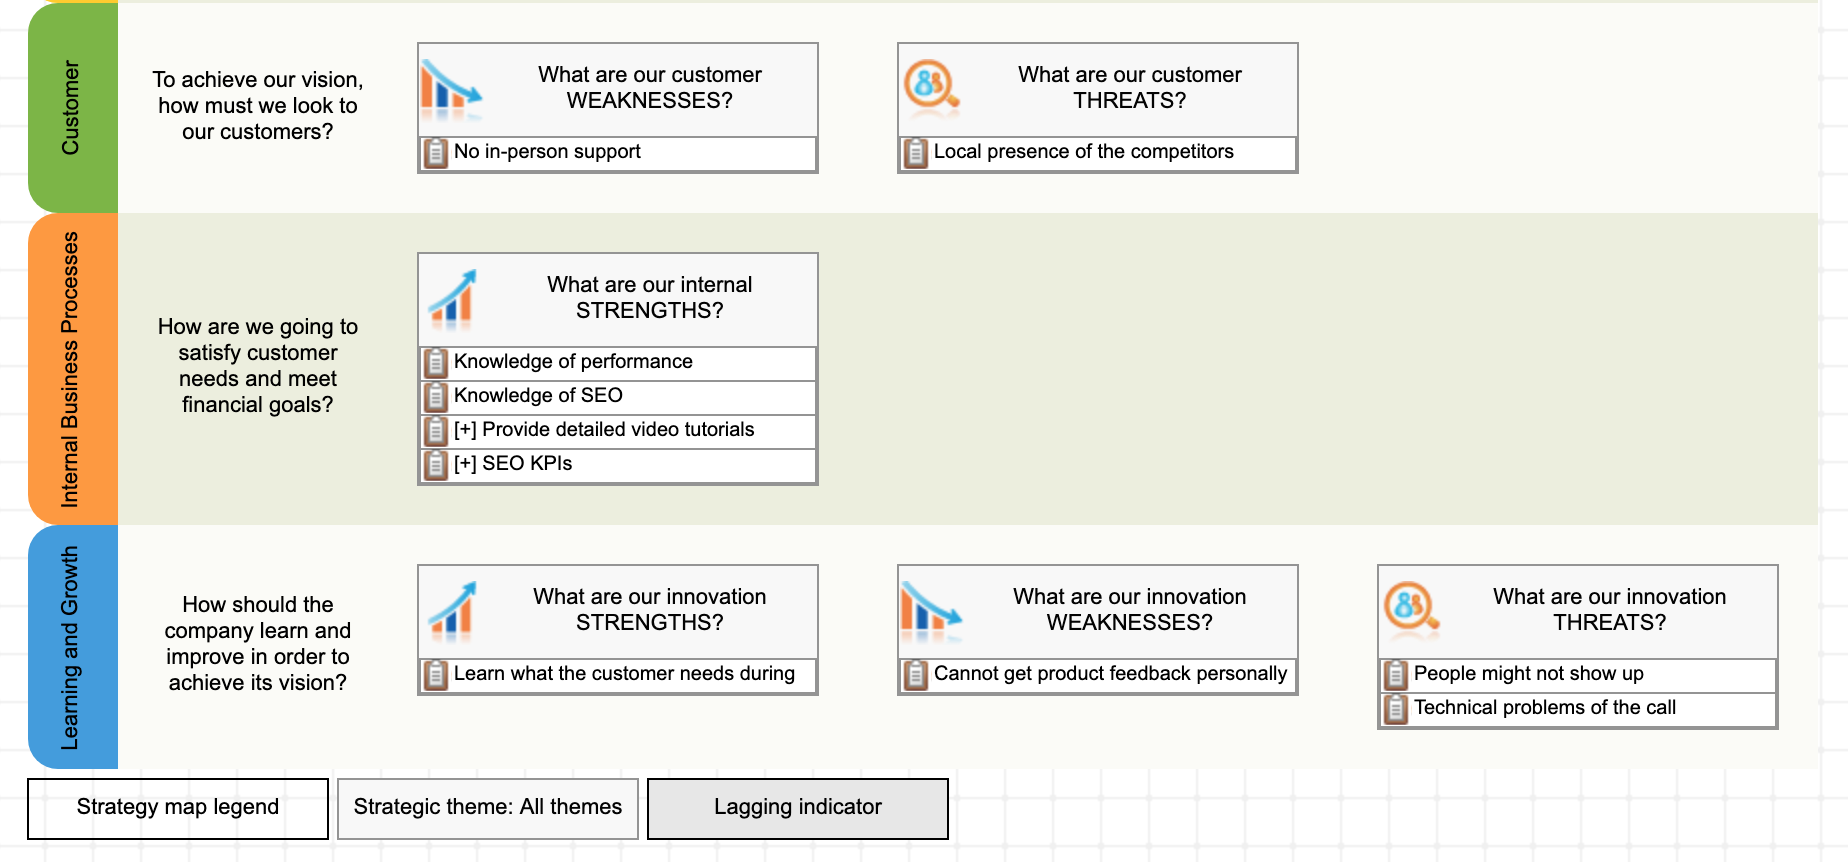 Using SWOT+S template to map findings in the innovation perspective